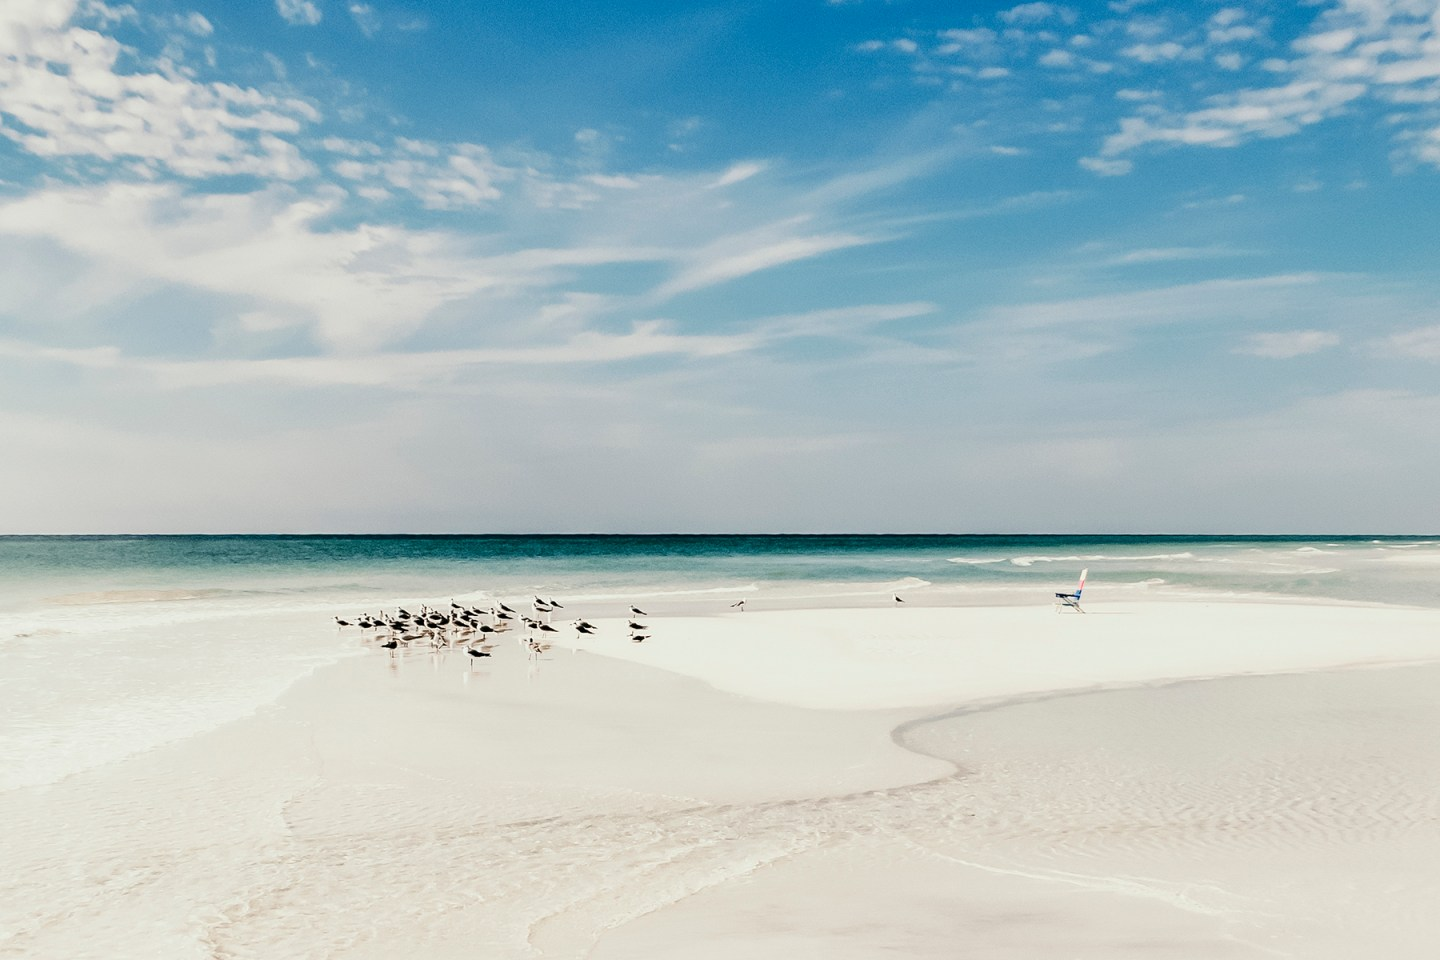 Sea birds on the Seagrove beach in South Walton Florida